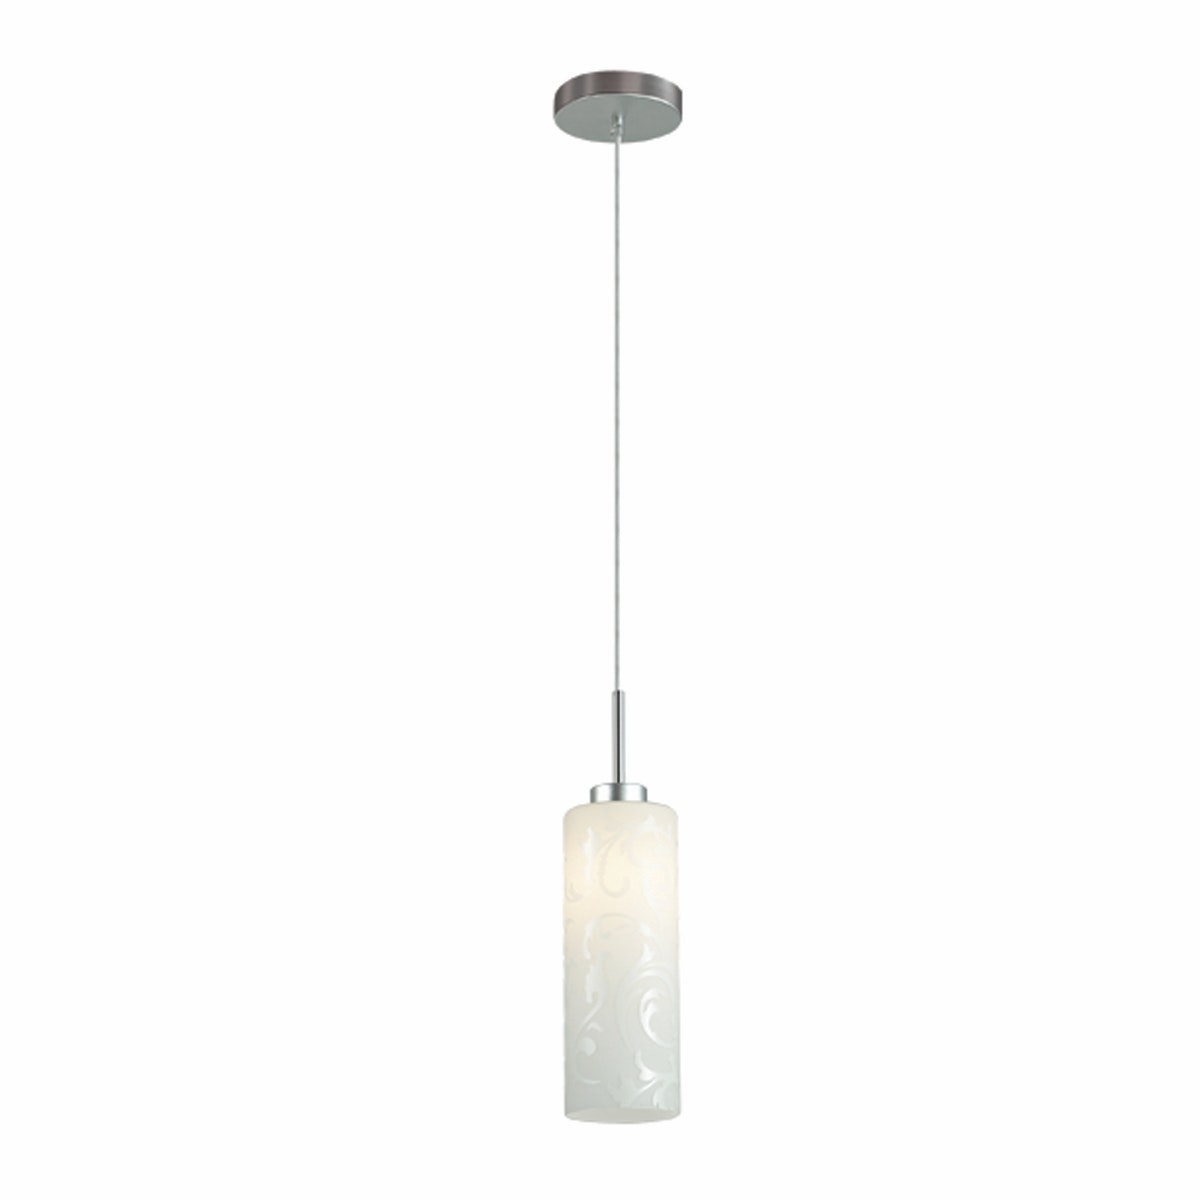 3+PROJECTS Lampu Gantung Single Pendant White 3+DL-PNP06A-1-AH